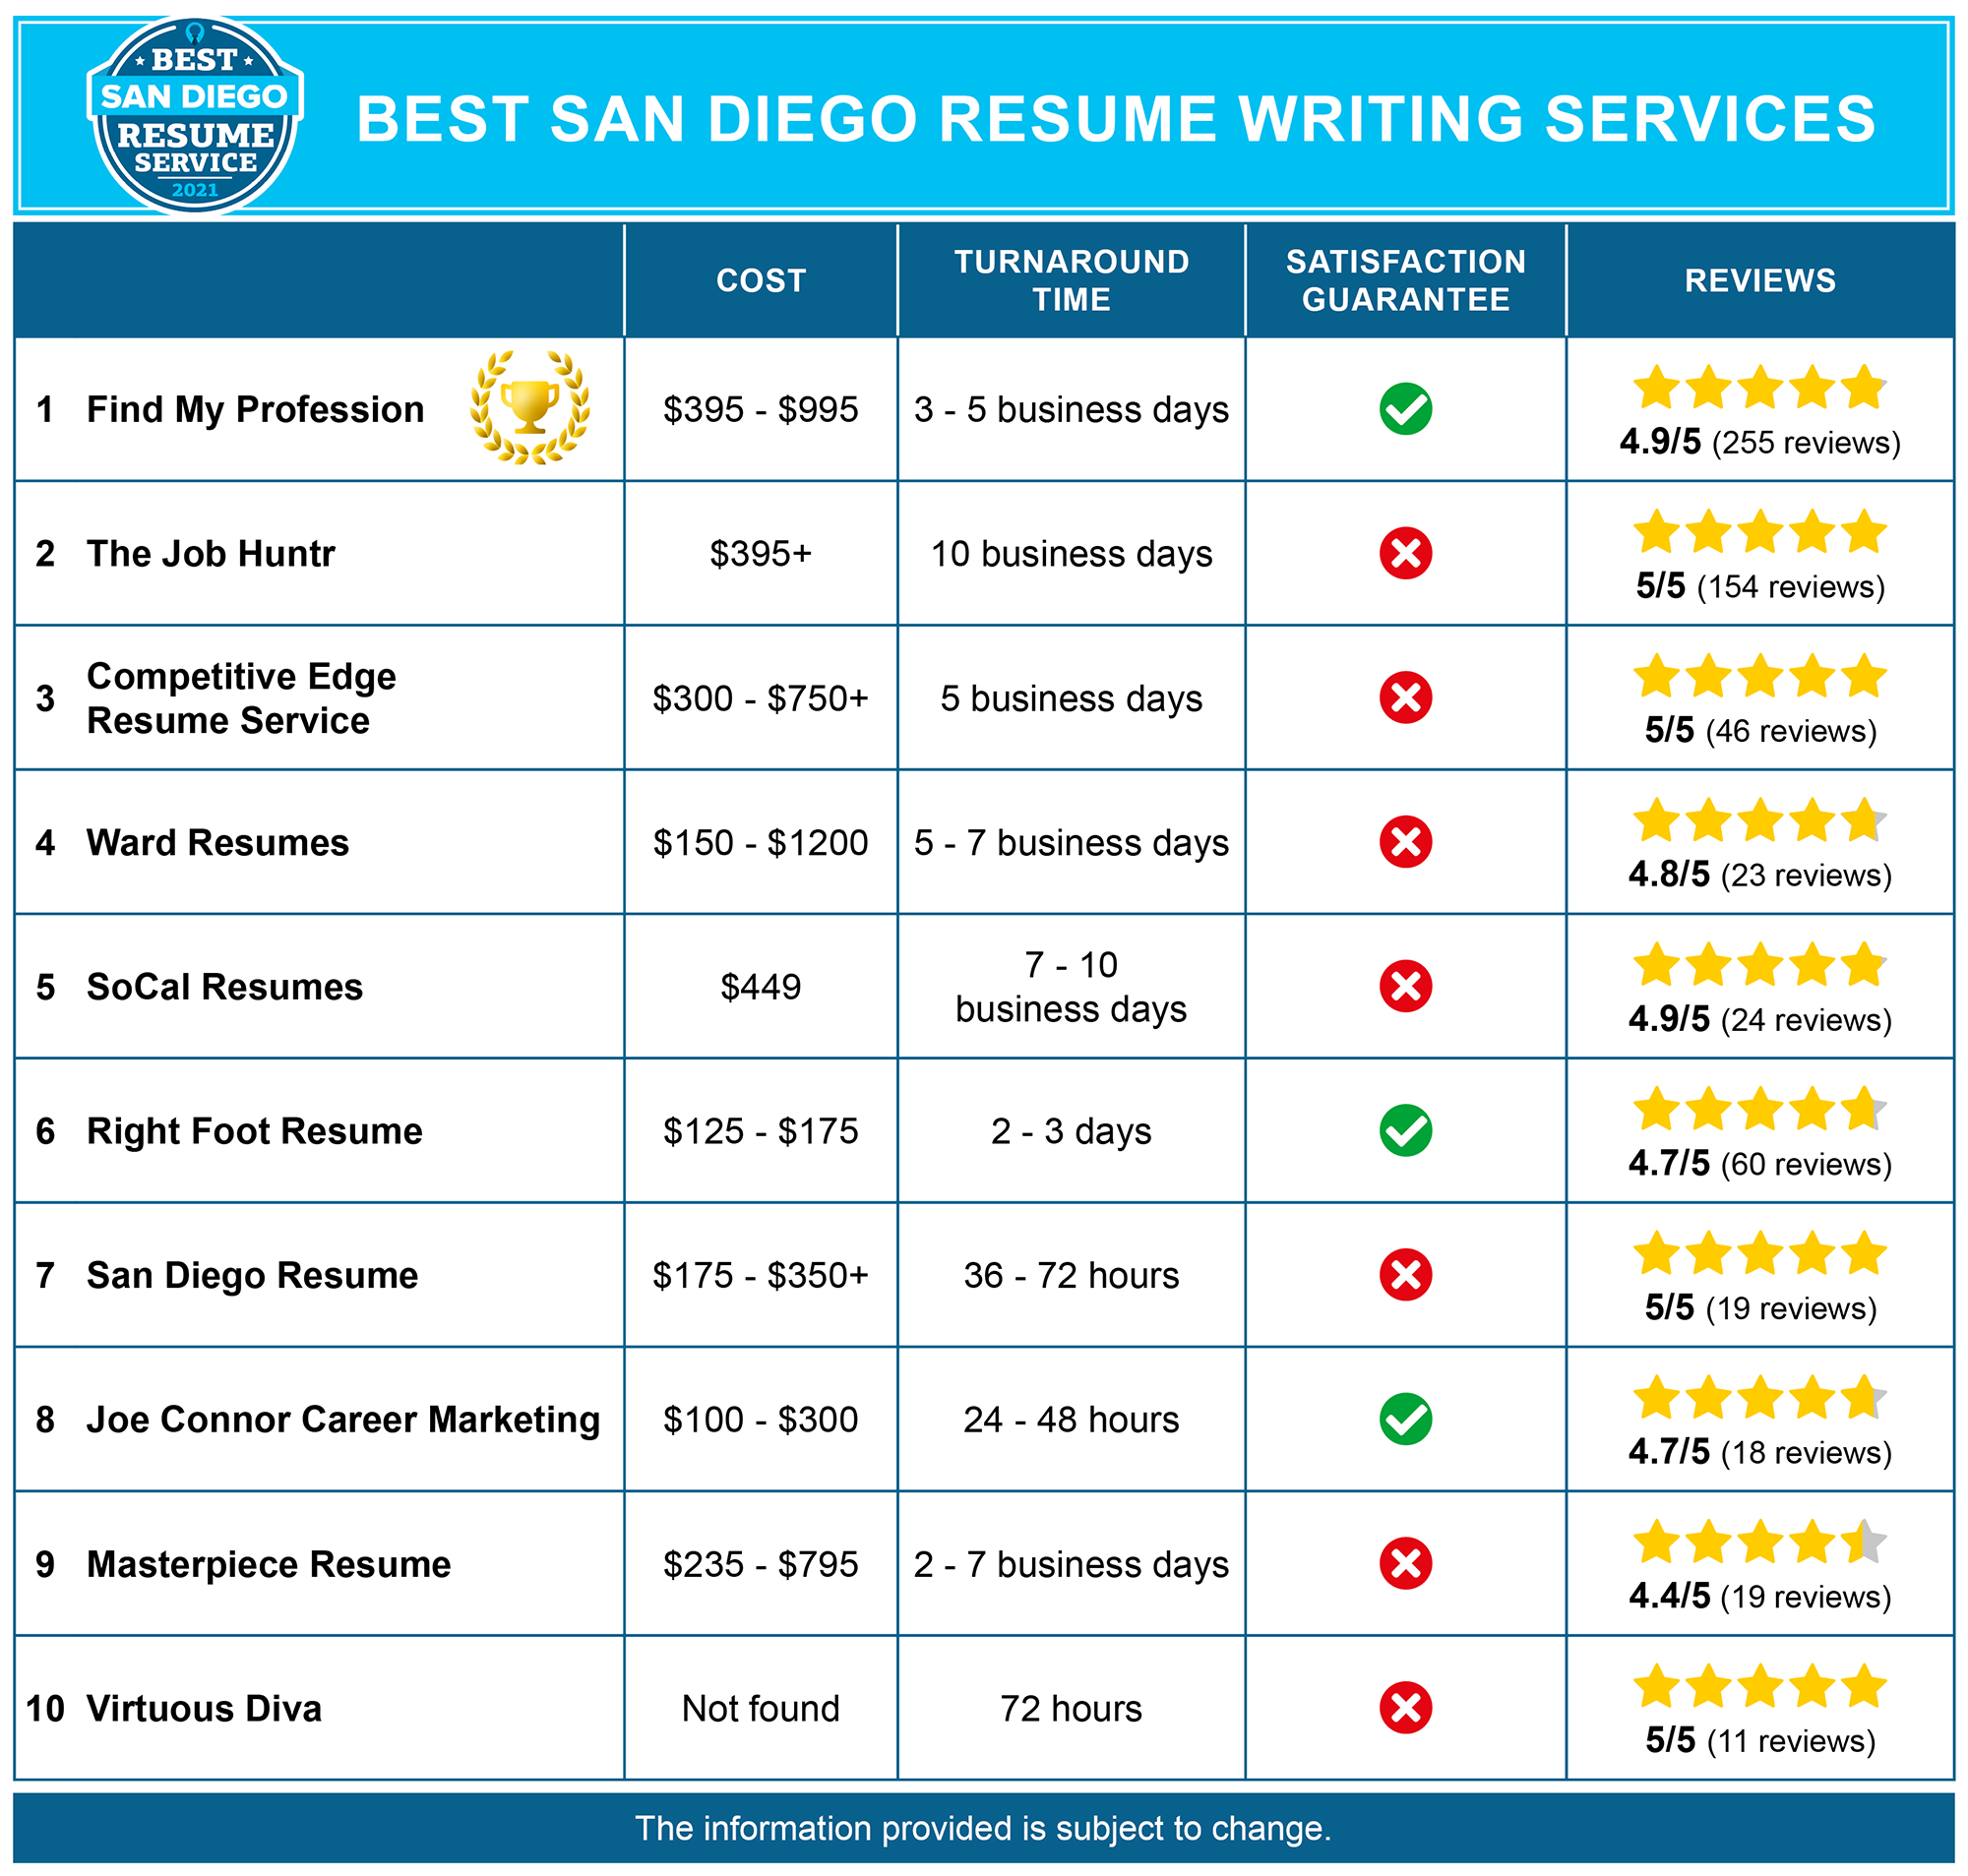 Best San Diego Resume Writing Services